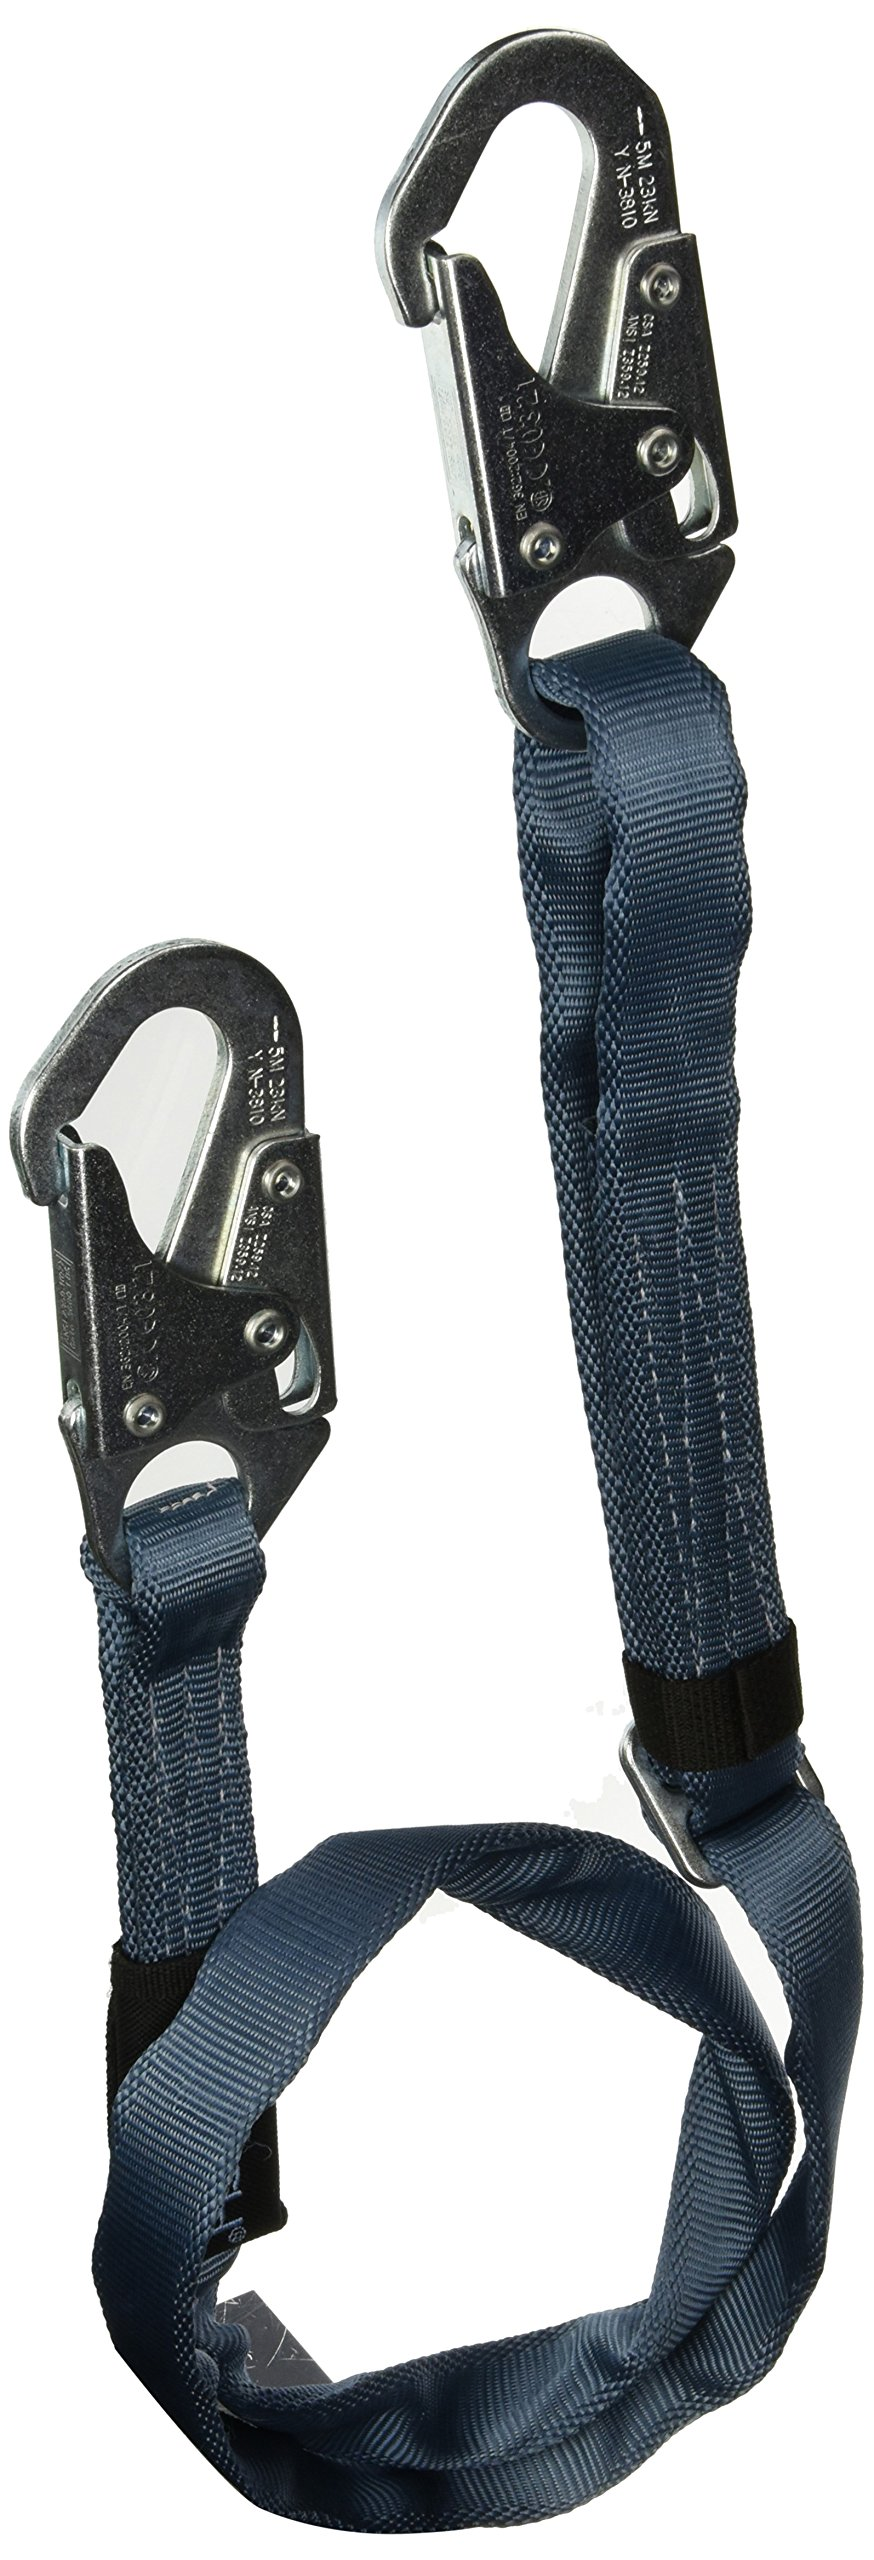 FallTech 8209 6-Foot Adjustable Web Restraint Lanyard